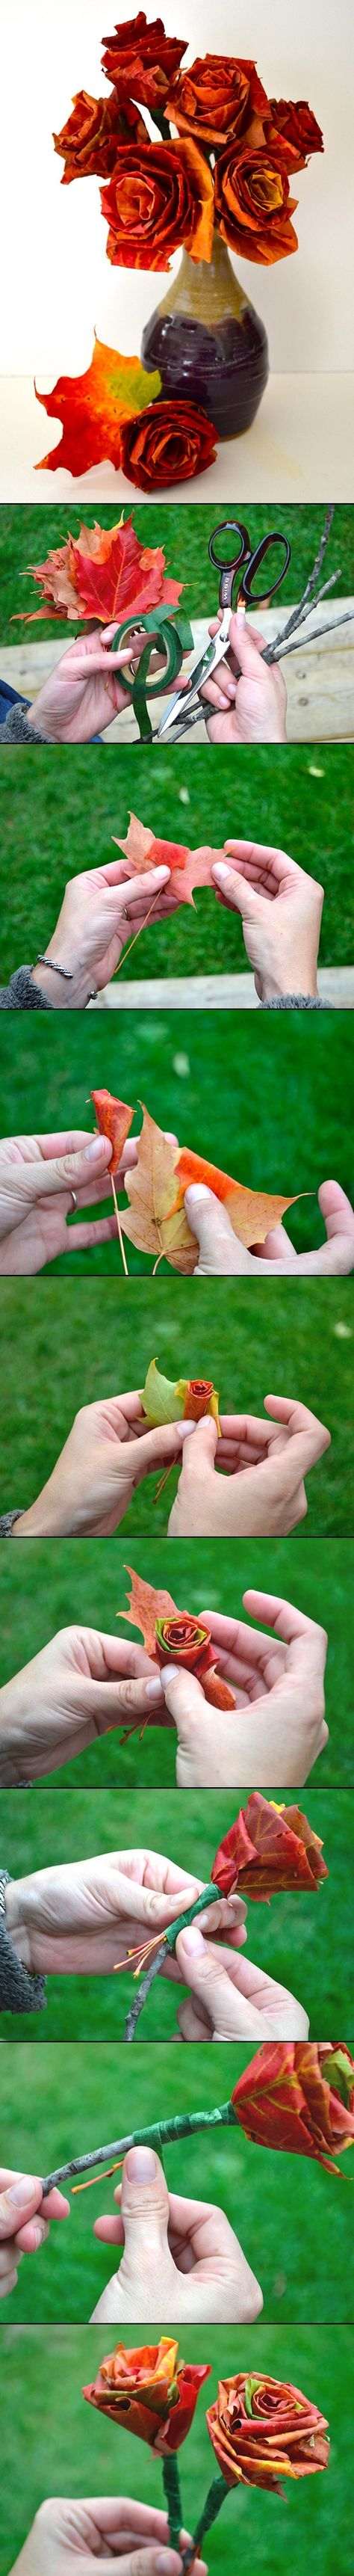 DIY PROJECT: AUTUMN LEAF BOUQUET/ I have made 1 to see what it will look like dried, gorgeous when first made so far :-)